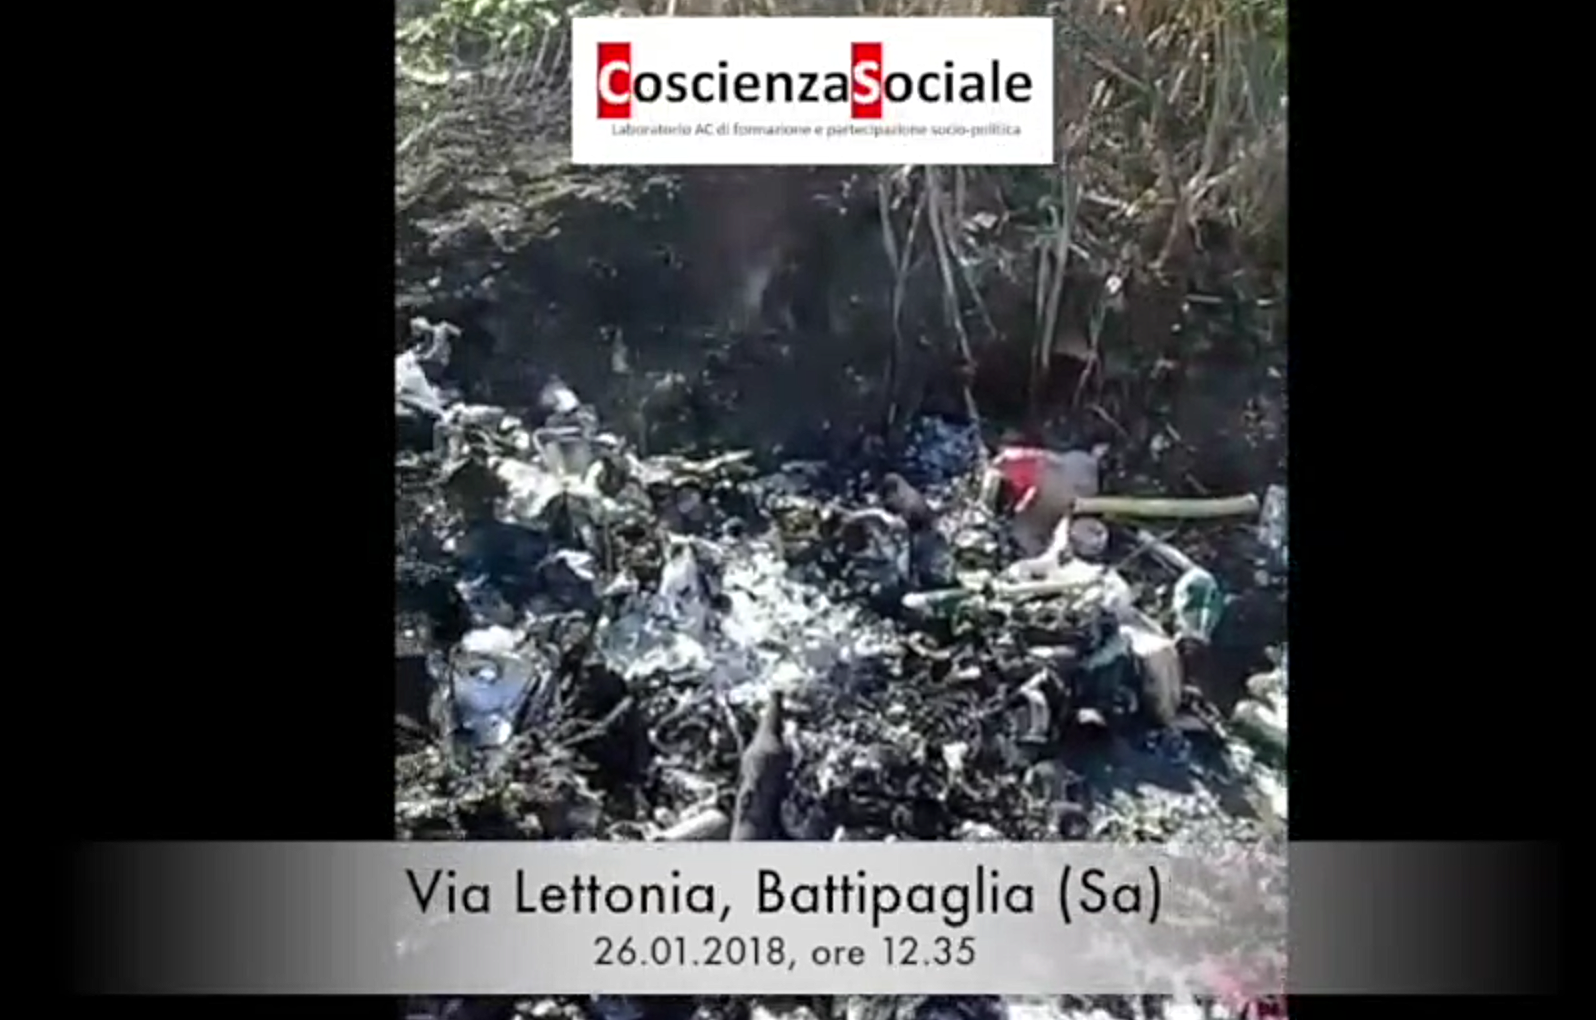 Discarica Tossica In Via Lettonia: Il Video-documentario